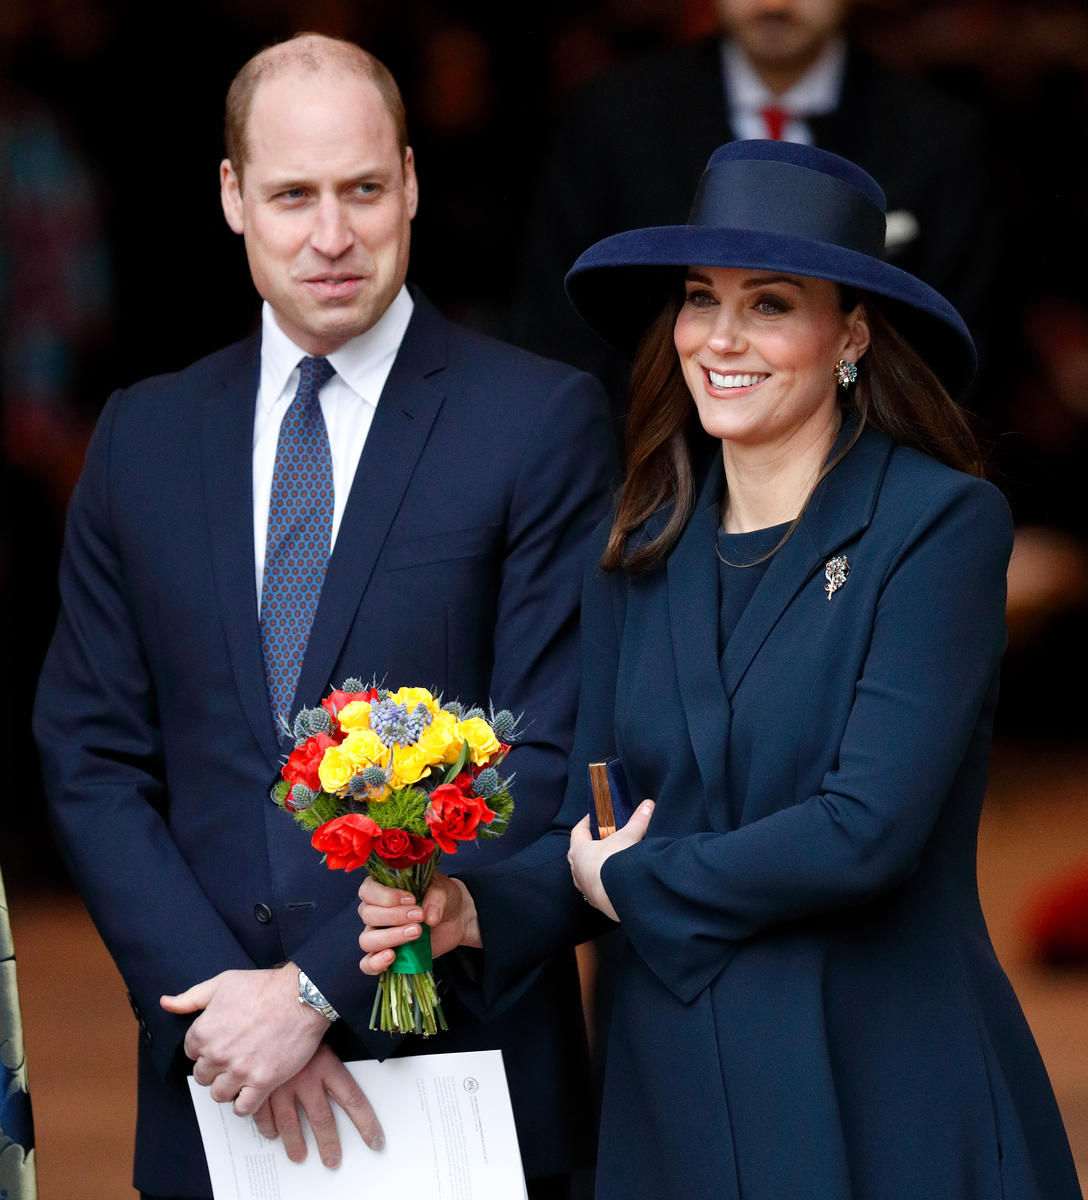 Prince William May or May Not Have Accidentally Revealed the Sex of Royal Baby No. 3